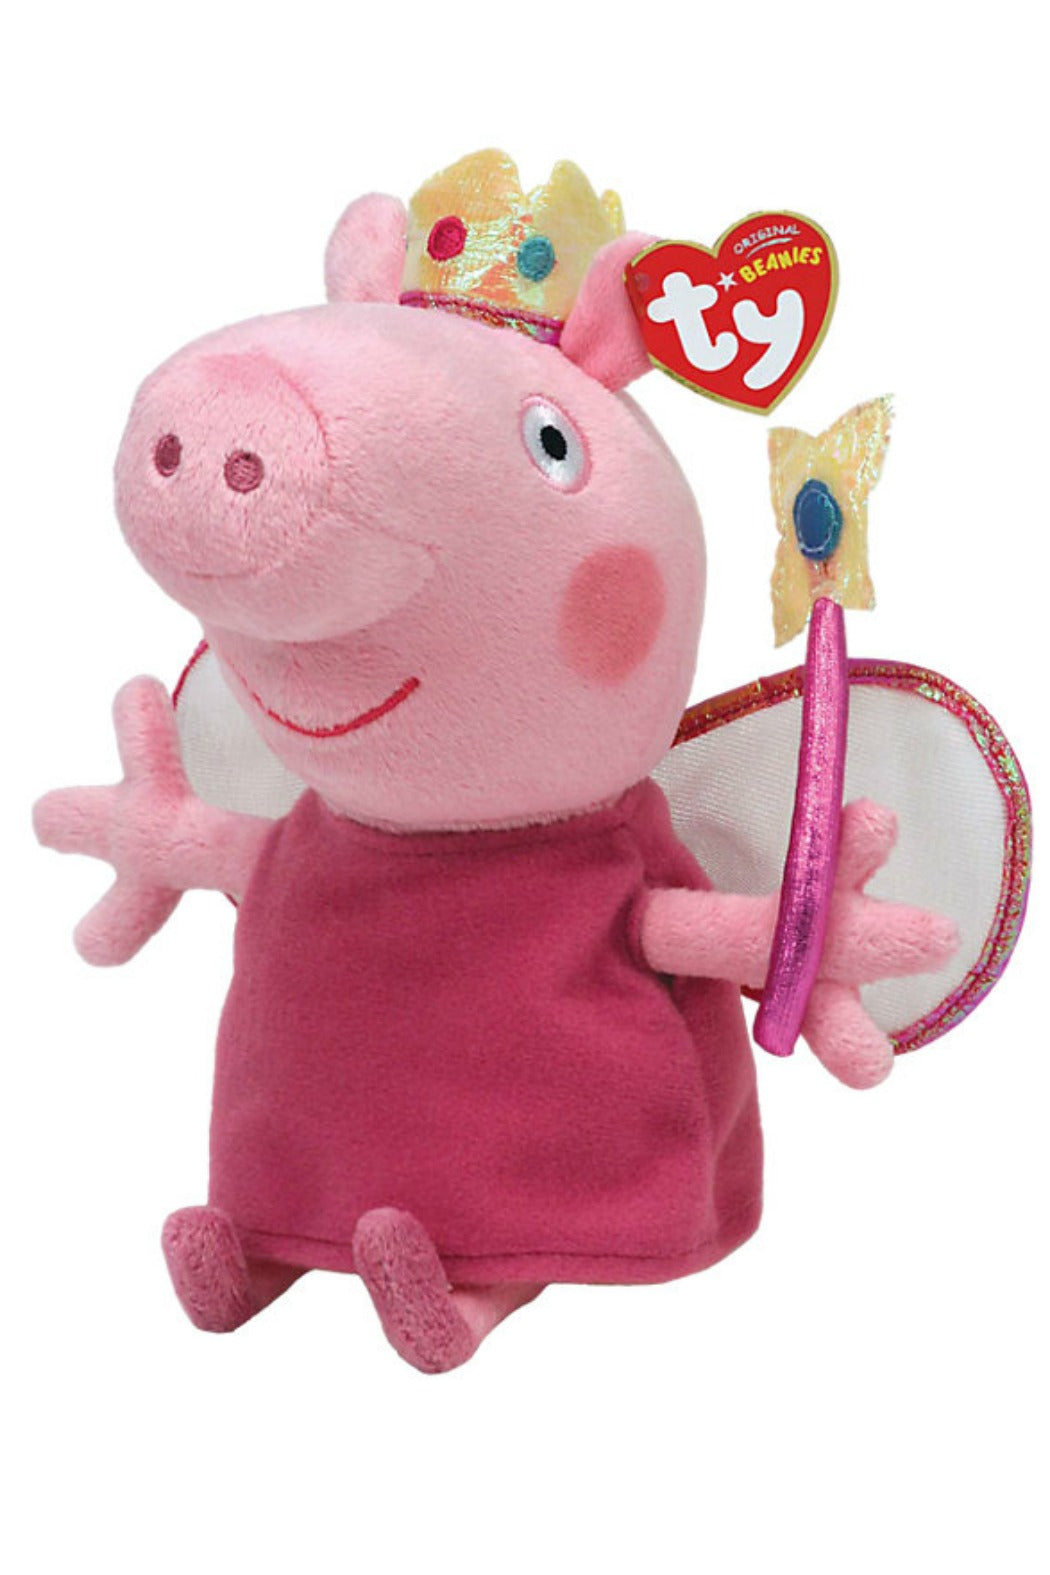 Peppa Pig Princess Fairy Beanie Plush Toy - Ty